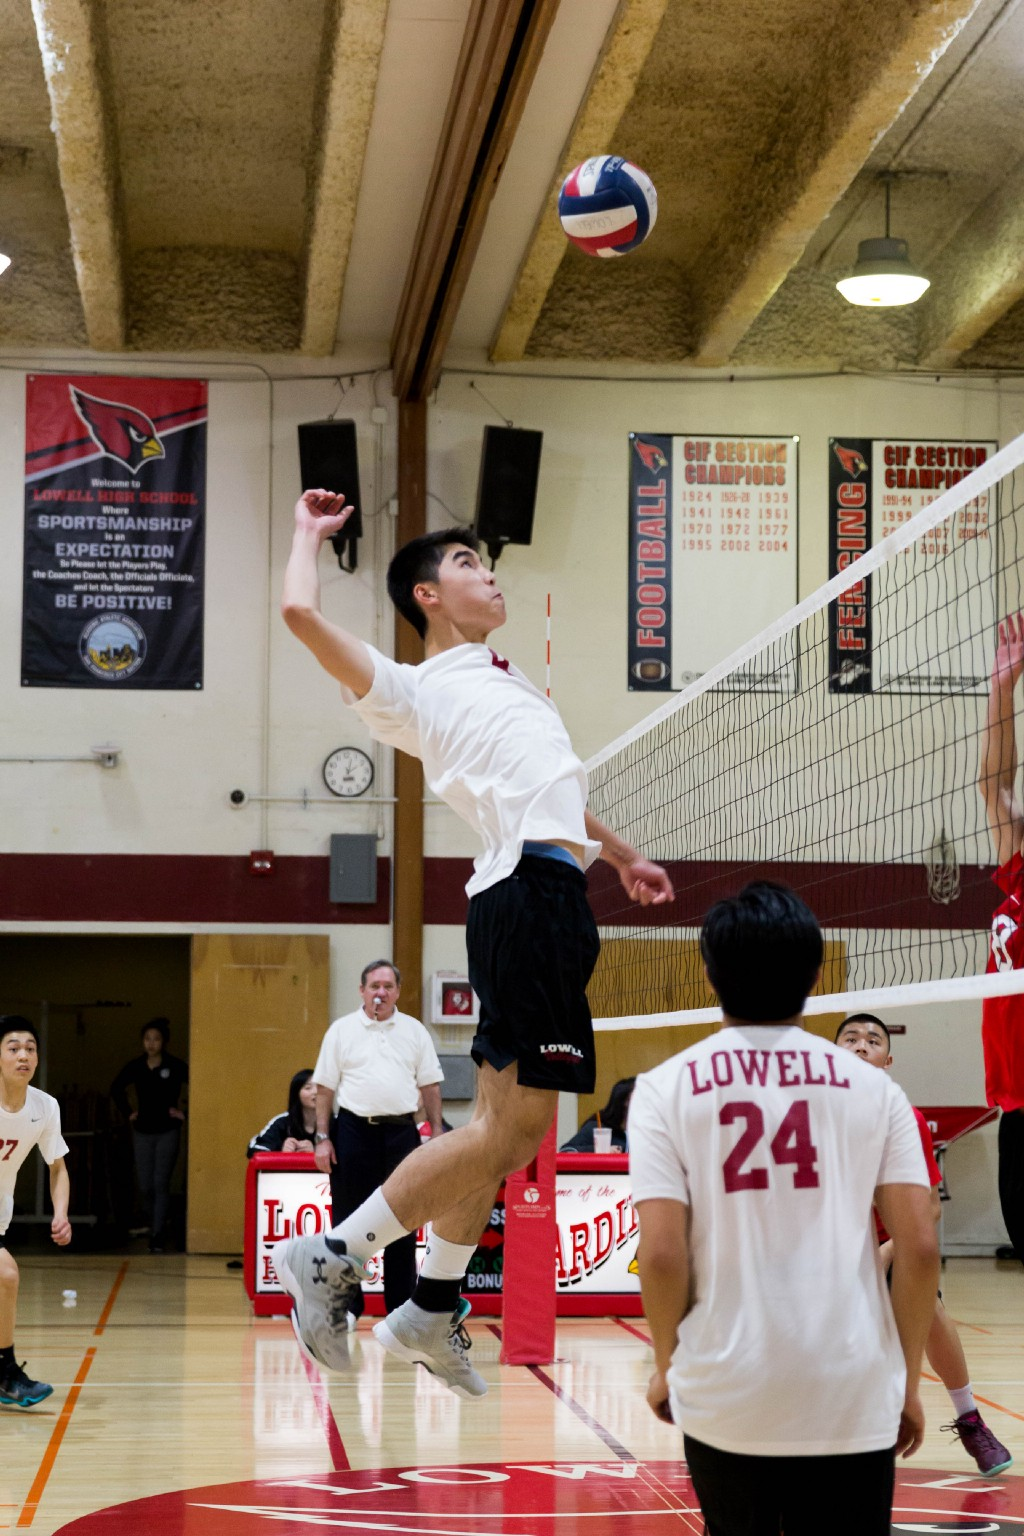 Senior middle blocker Alan Duong spikes the ball against the Washington Eagles on April 5.